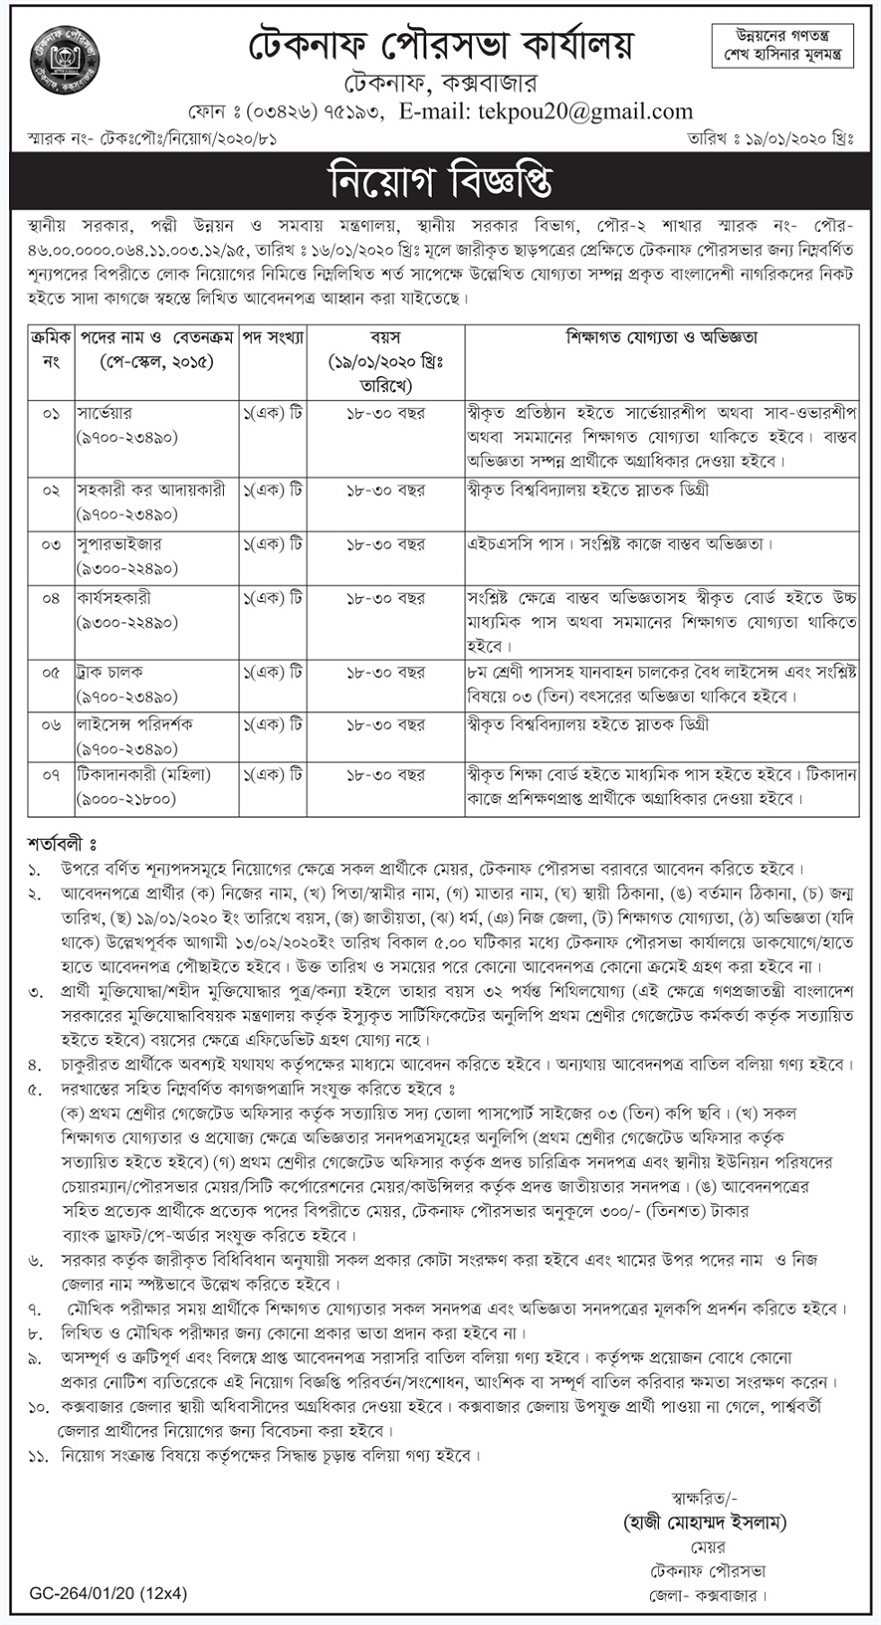 Teknaf Municipality Office Job Circular 2020